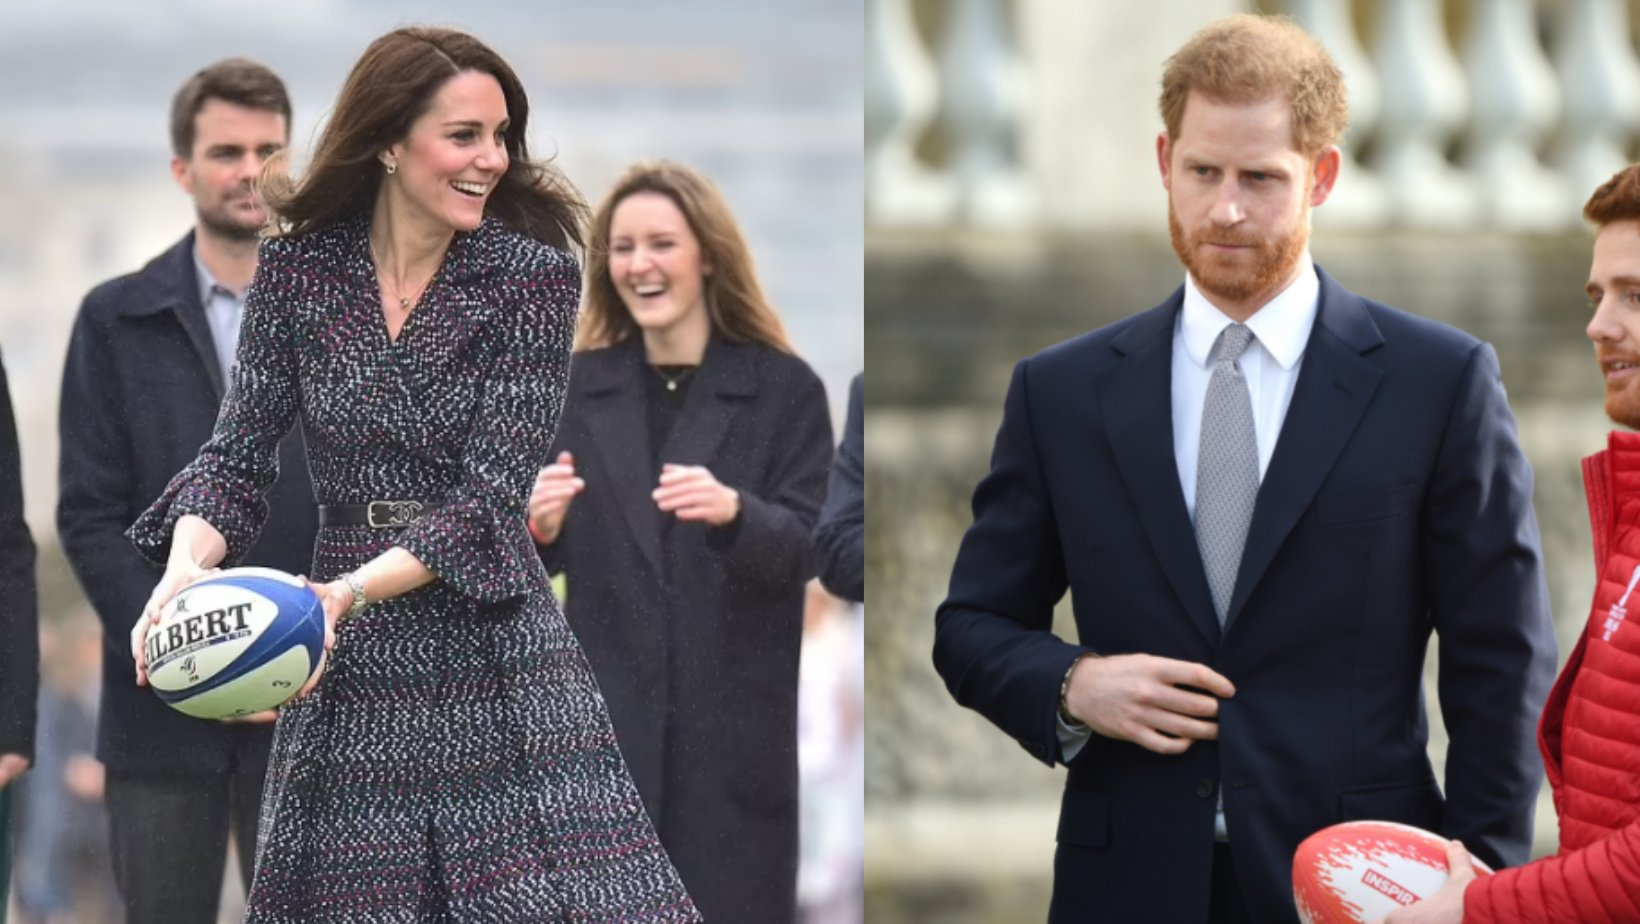 cover.png?resize=412,275 - Kate Middleton Will Replace Prince Harry As Patron Of Rugby Football & Rugby League After The Latter Was Stripped Of Honorary Roles By The Queen